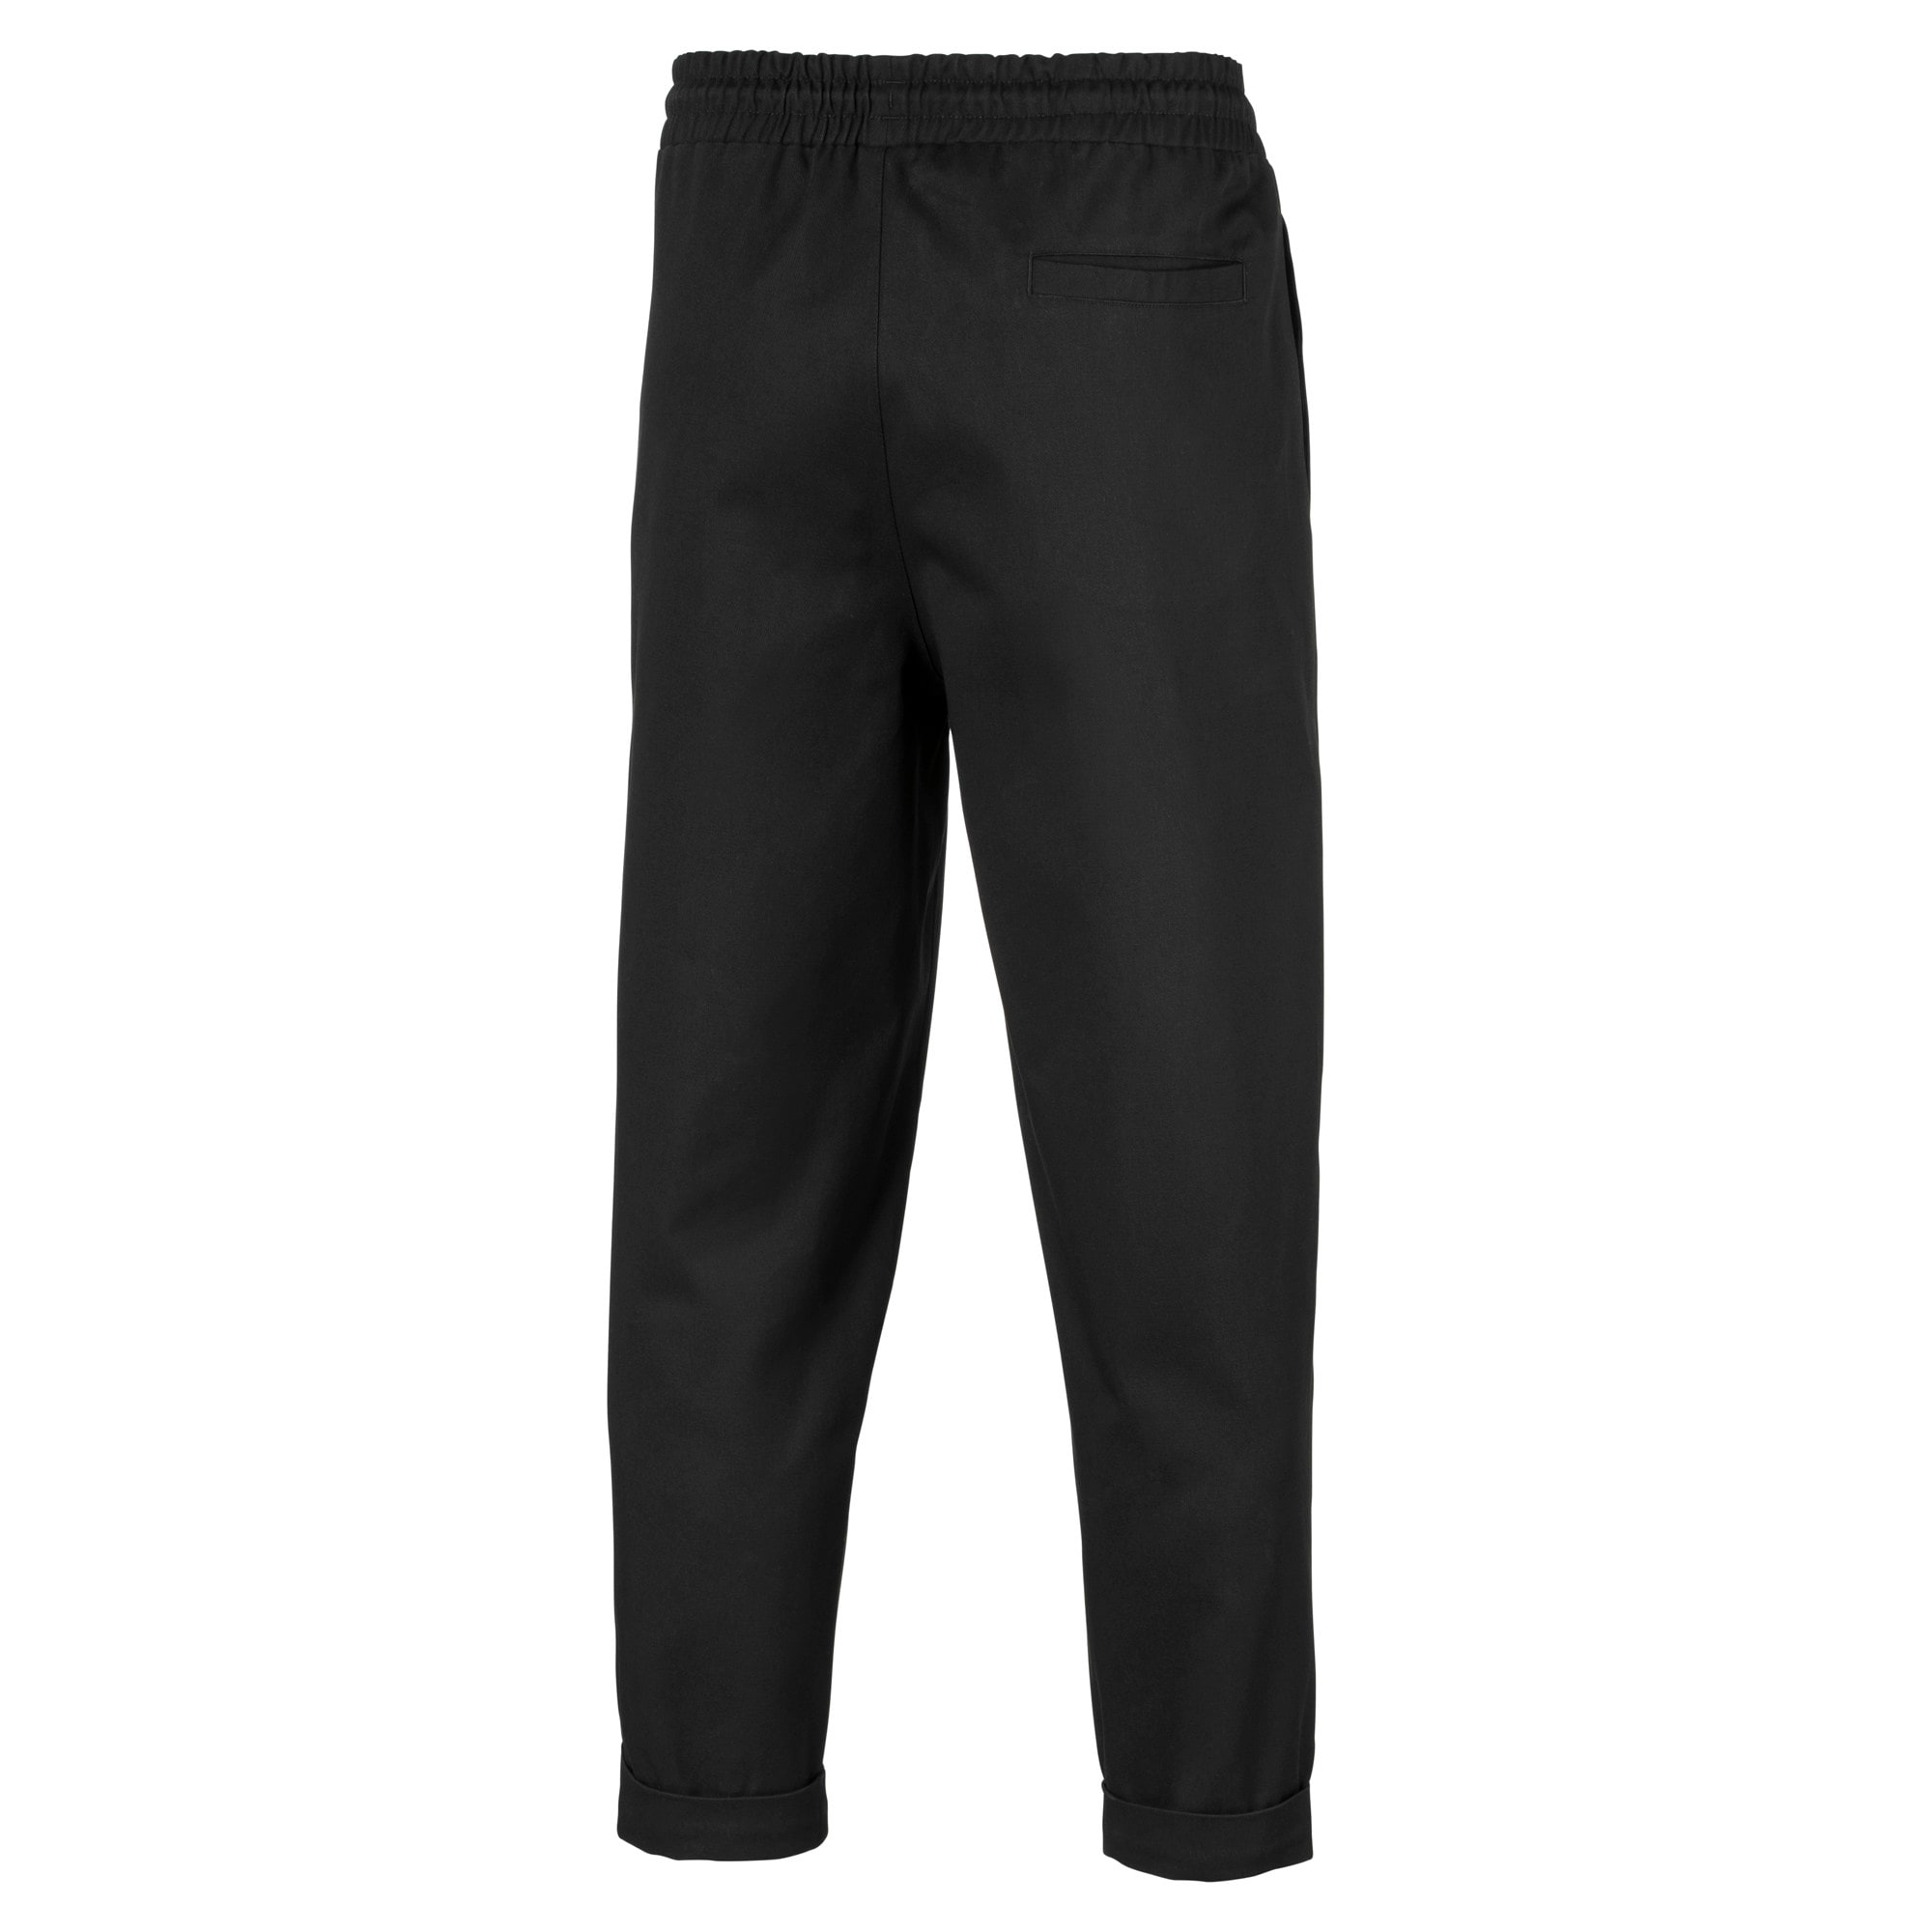 Thumbnail 2 of Evolution Chino Men's Pants, Puma Black, medium